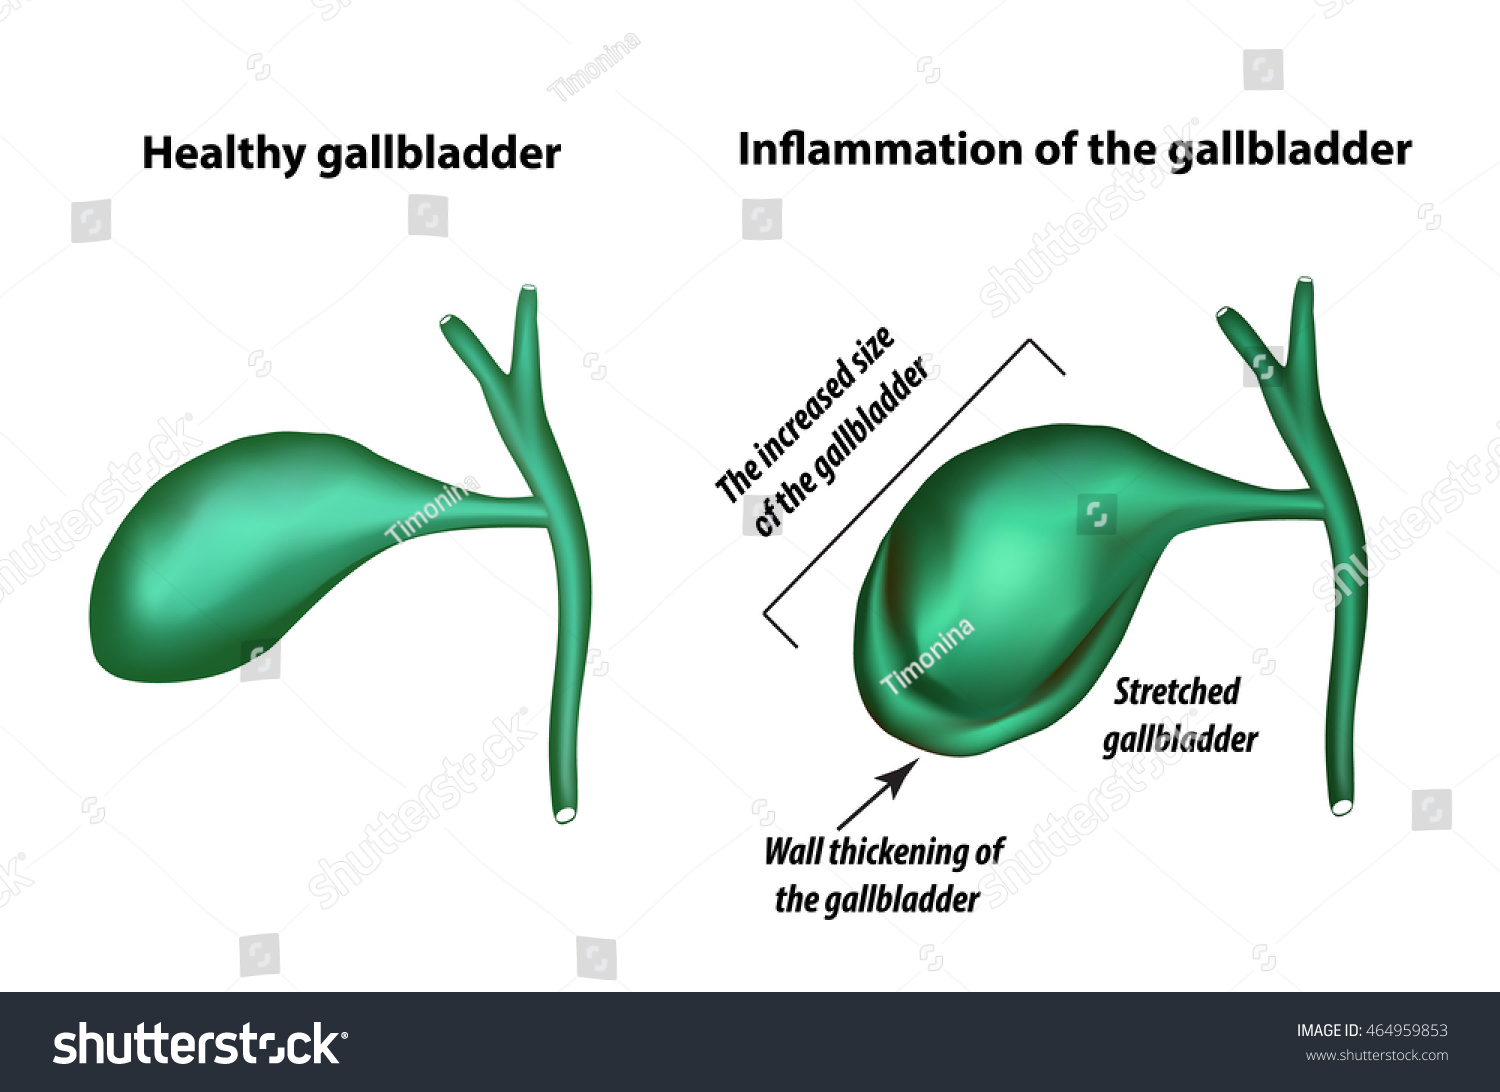 Bend of the gallbladder: causes, clinical manifestations, treatment